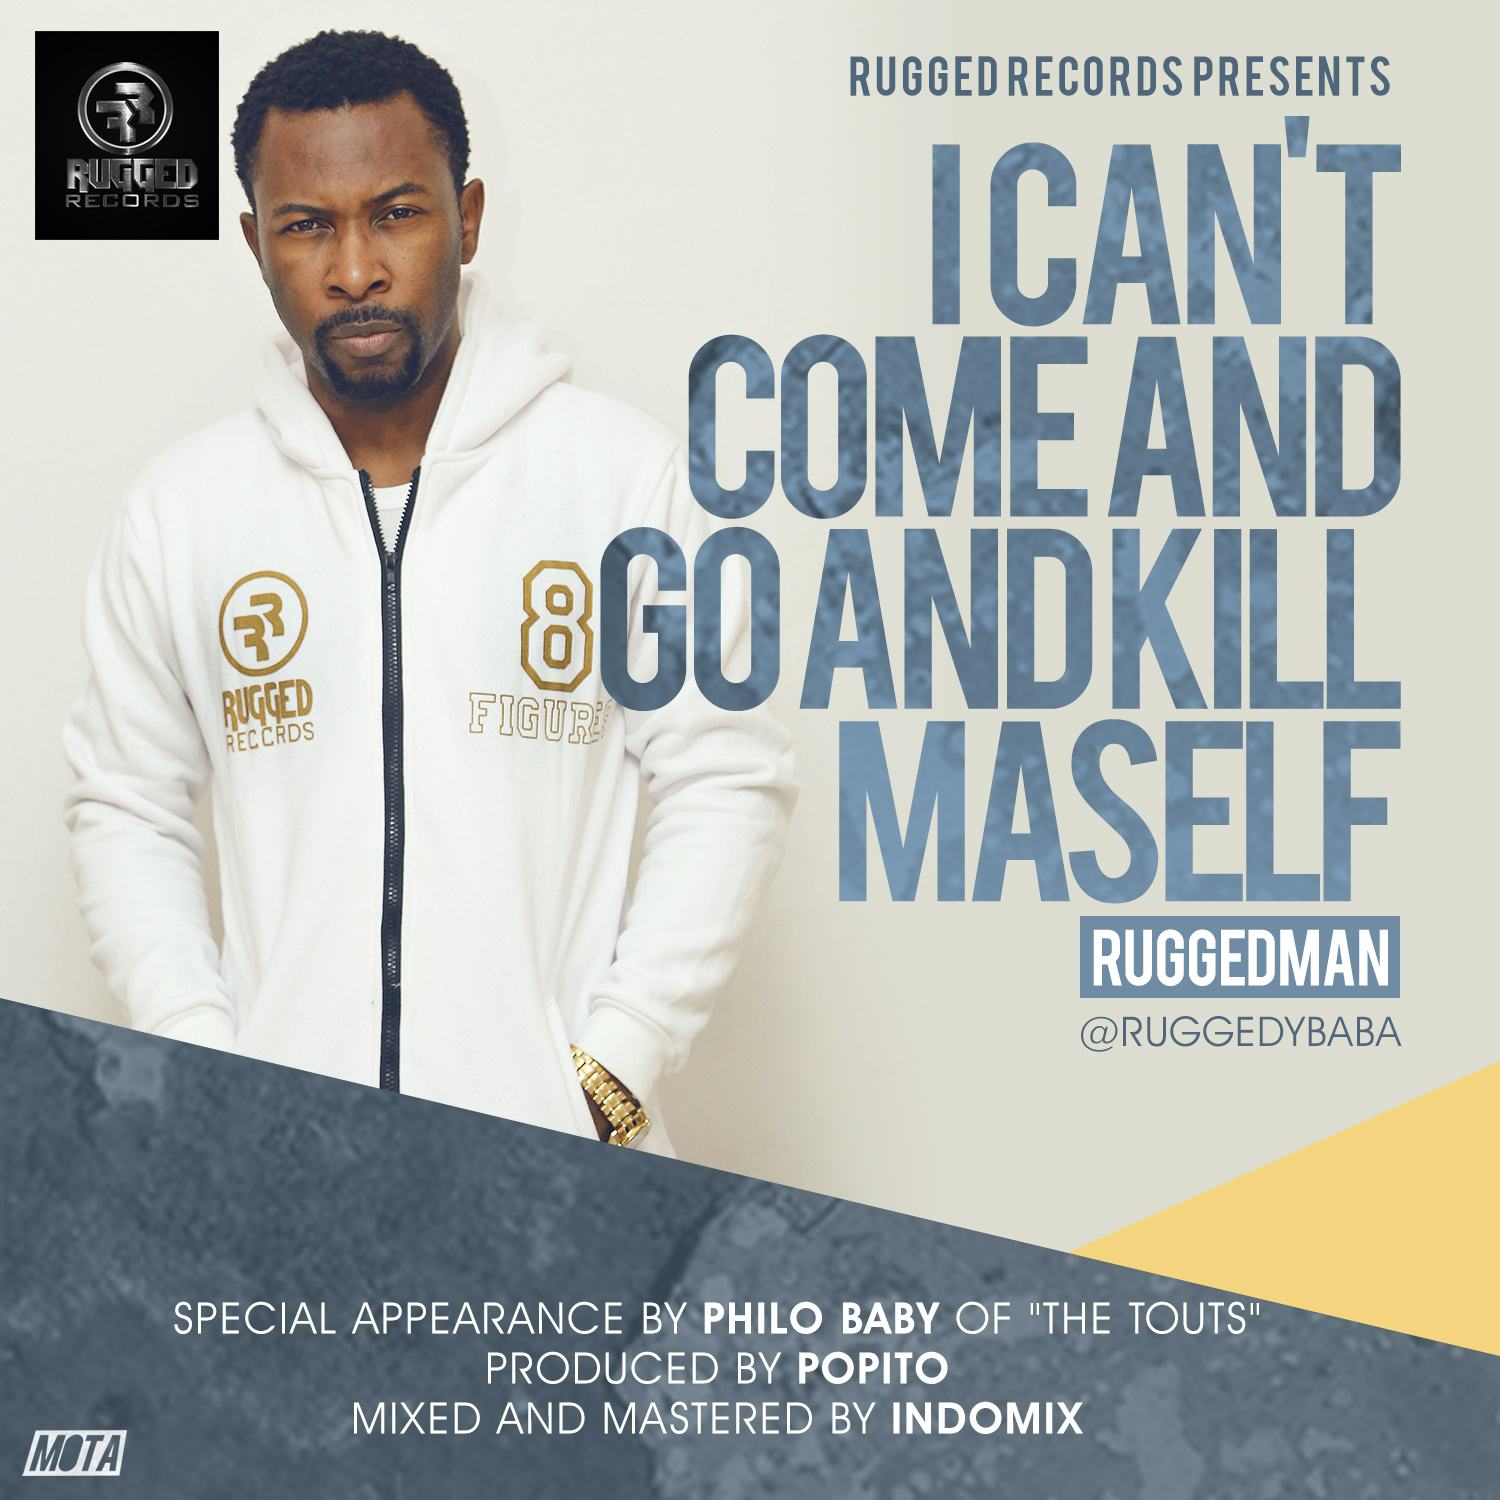 Ruggedman – I Cant Come And Go And Kill Maself [AuDio]